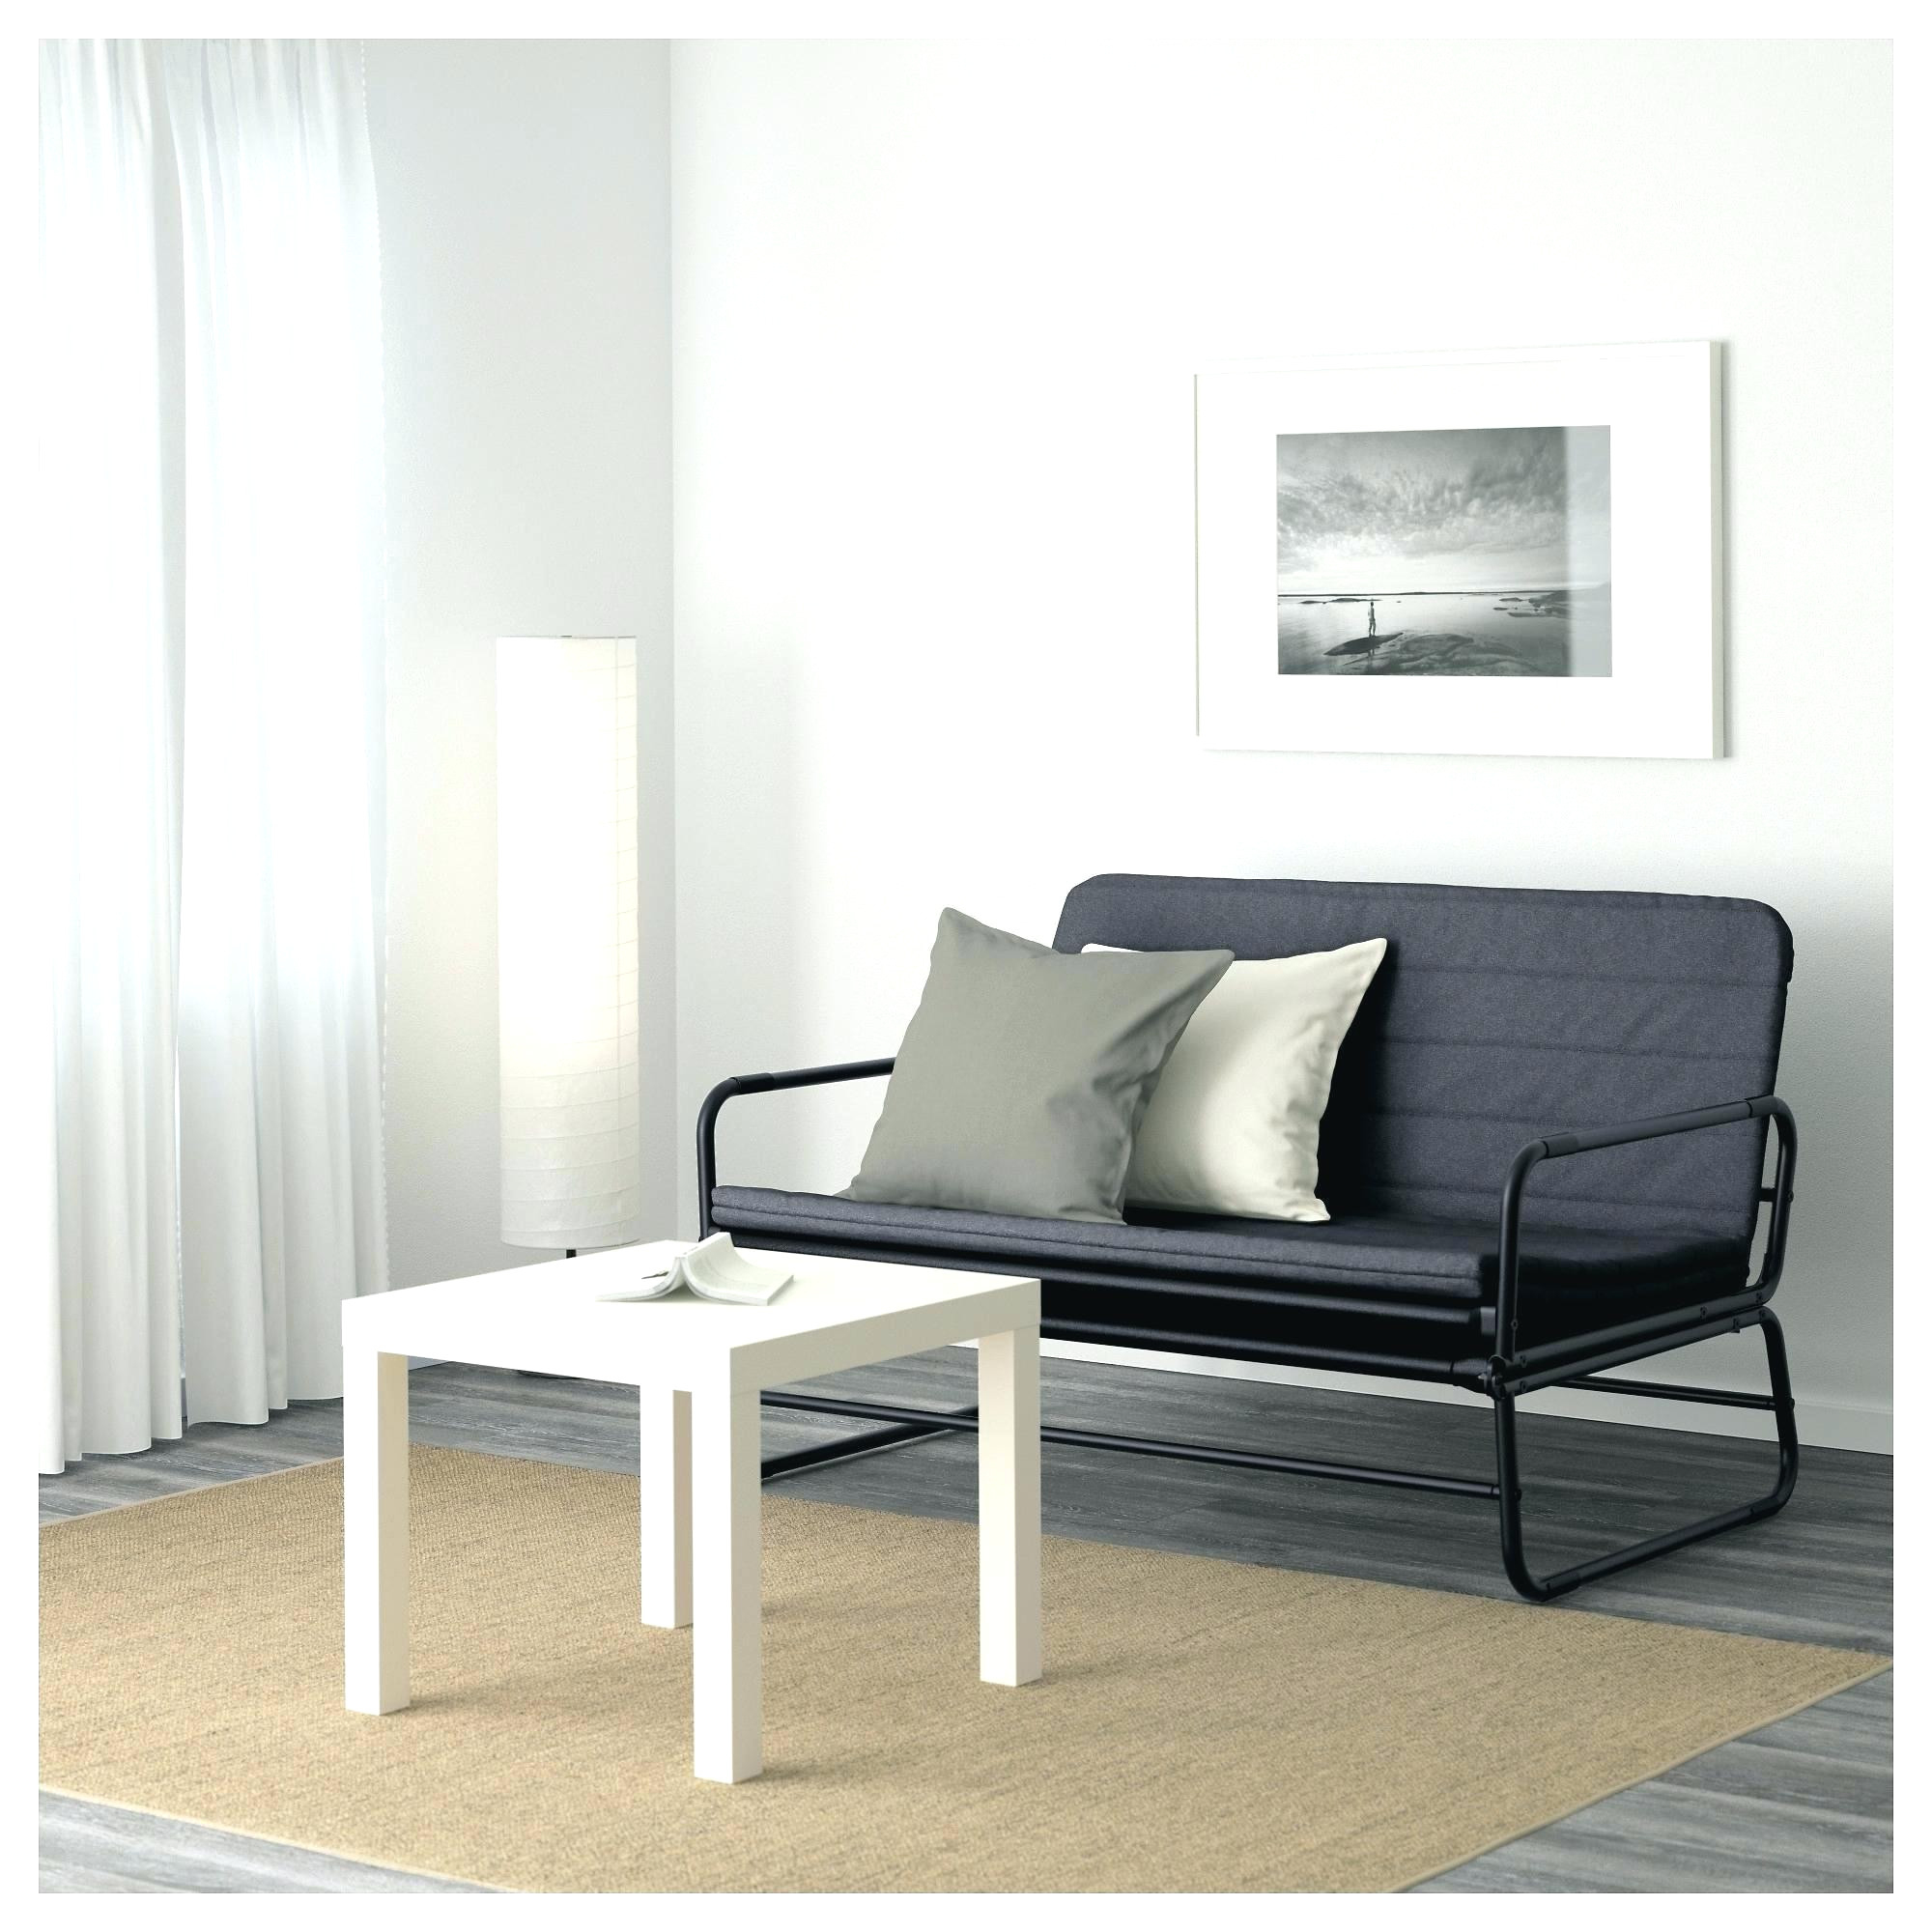 Ikea Ektorp Convertible Luxe Images Housse Beddinge Ikea Ikea with Housse Beddinge Ikea Best